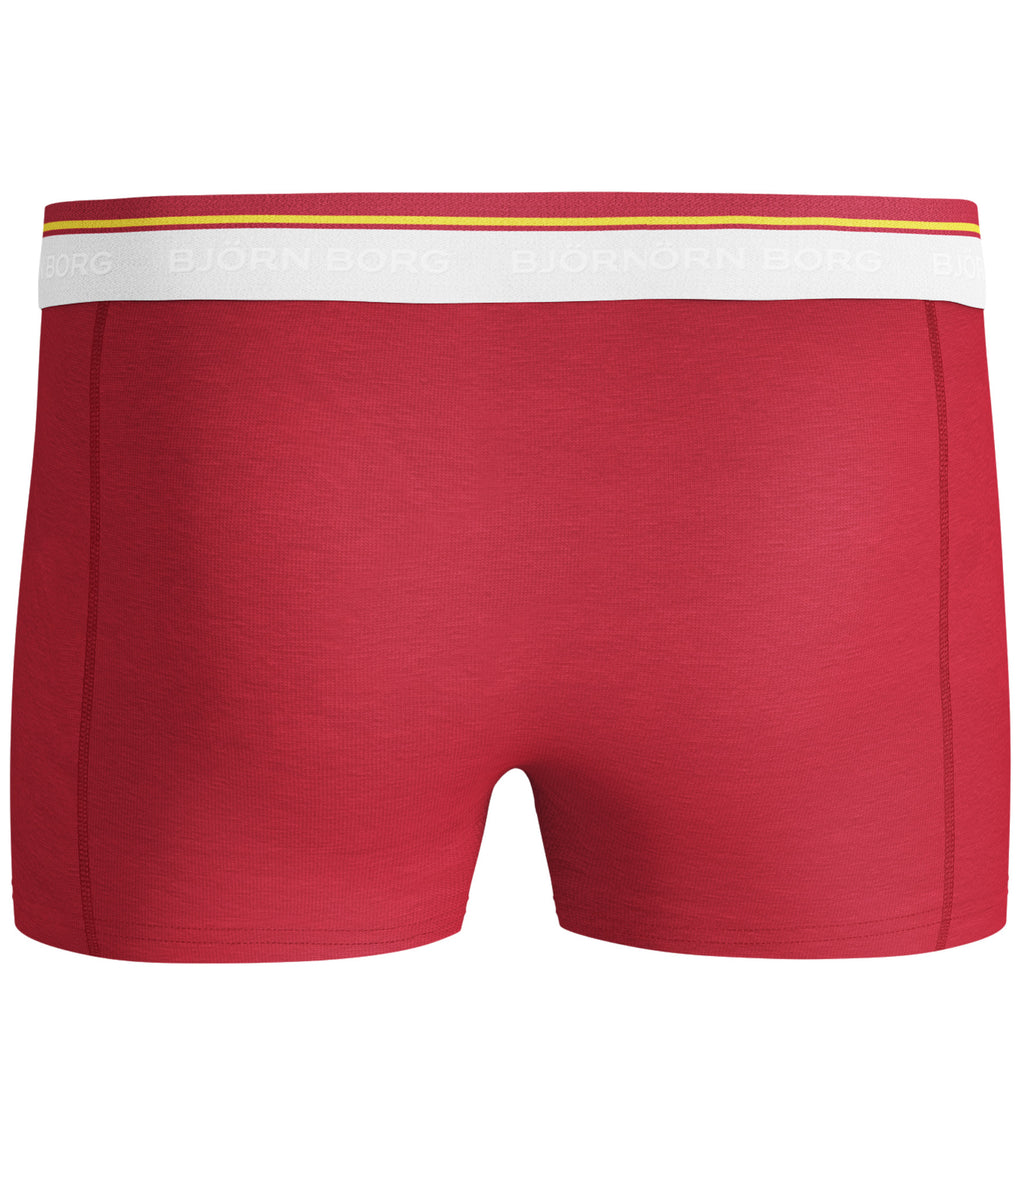 Bjorn Borg short Shorts Spain rv